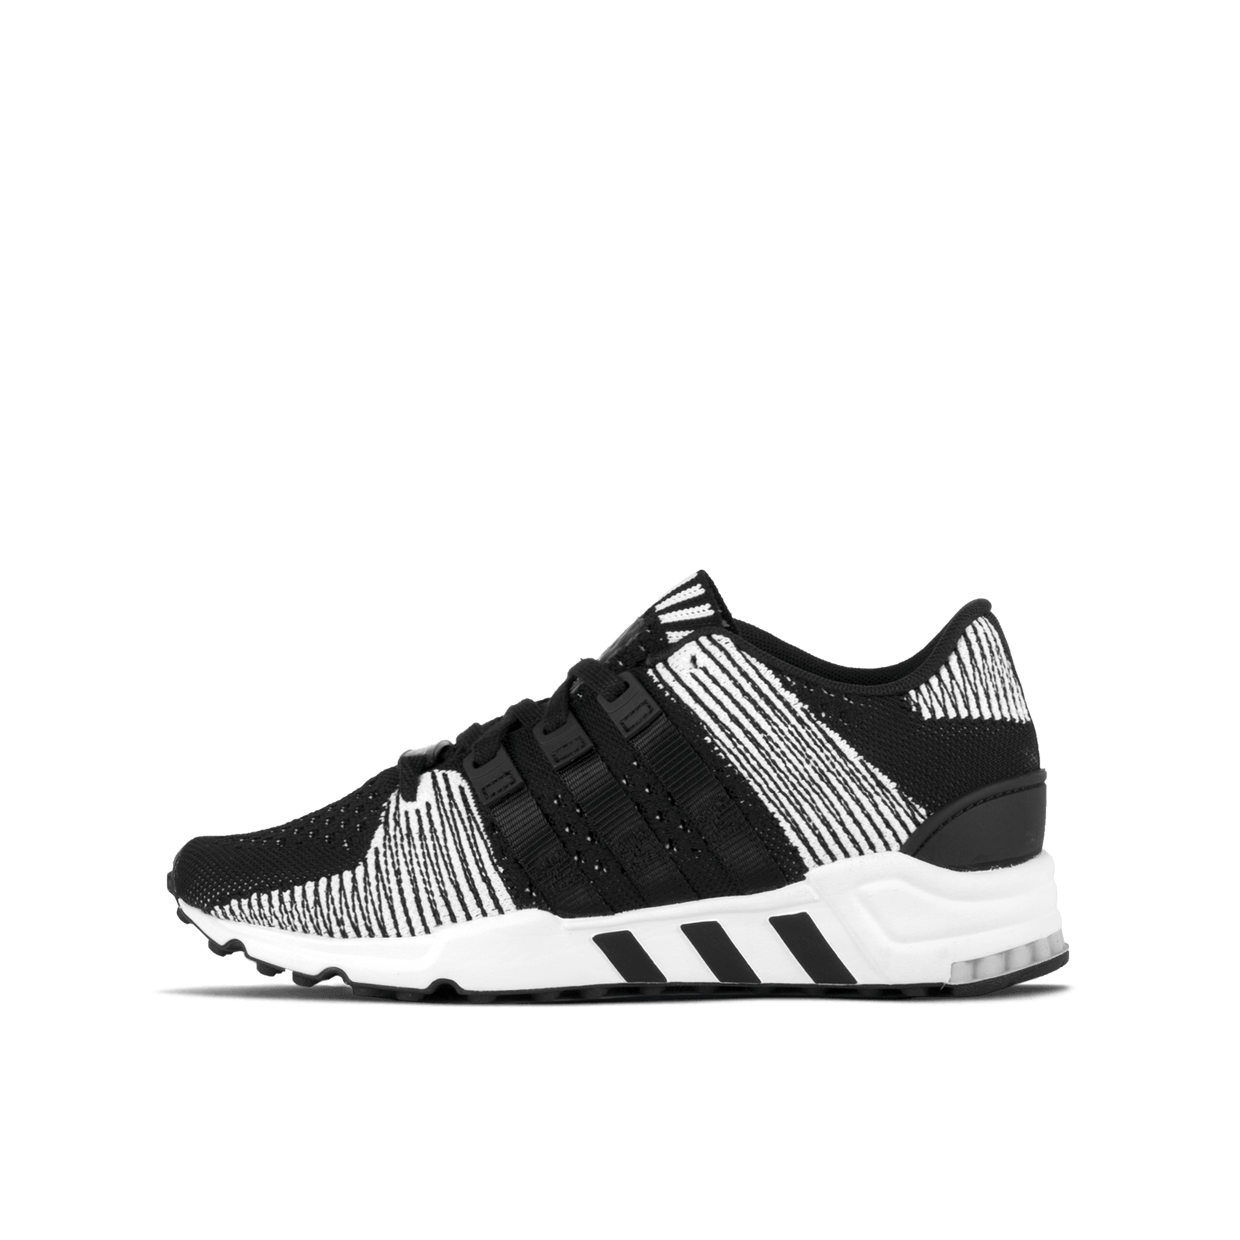 Eqt Support Rf Pk - Black/white